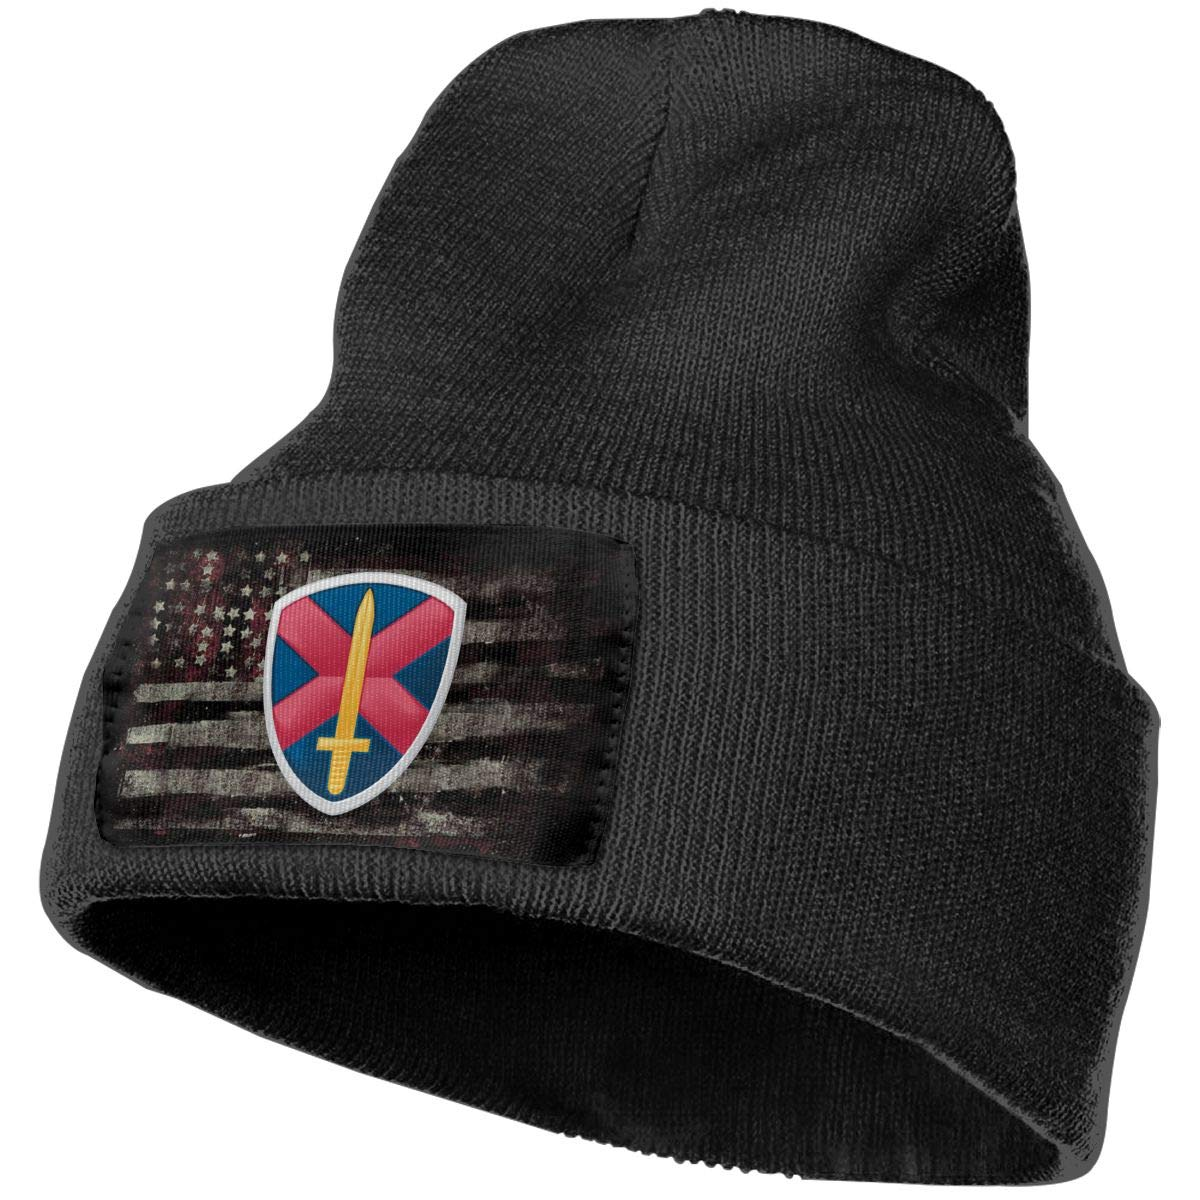 US Army 10th Personnel Command Mens Beanie Cap Skull Cap Winter Warm Knitting Hats.